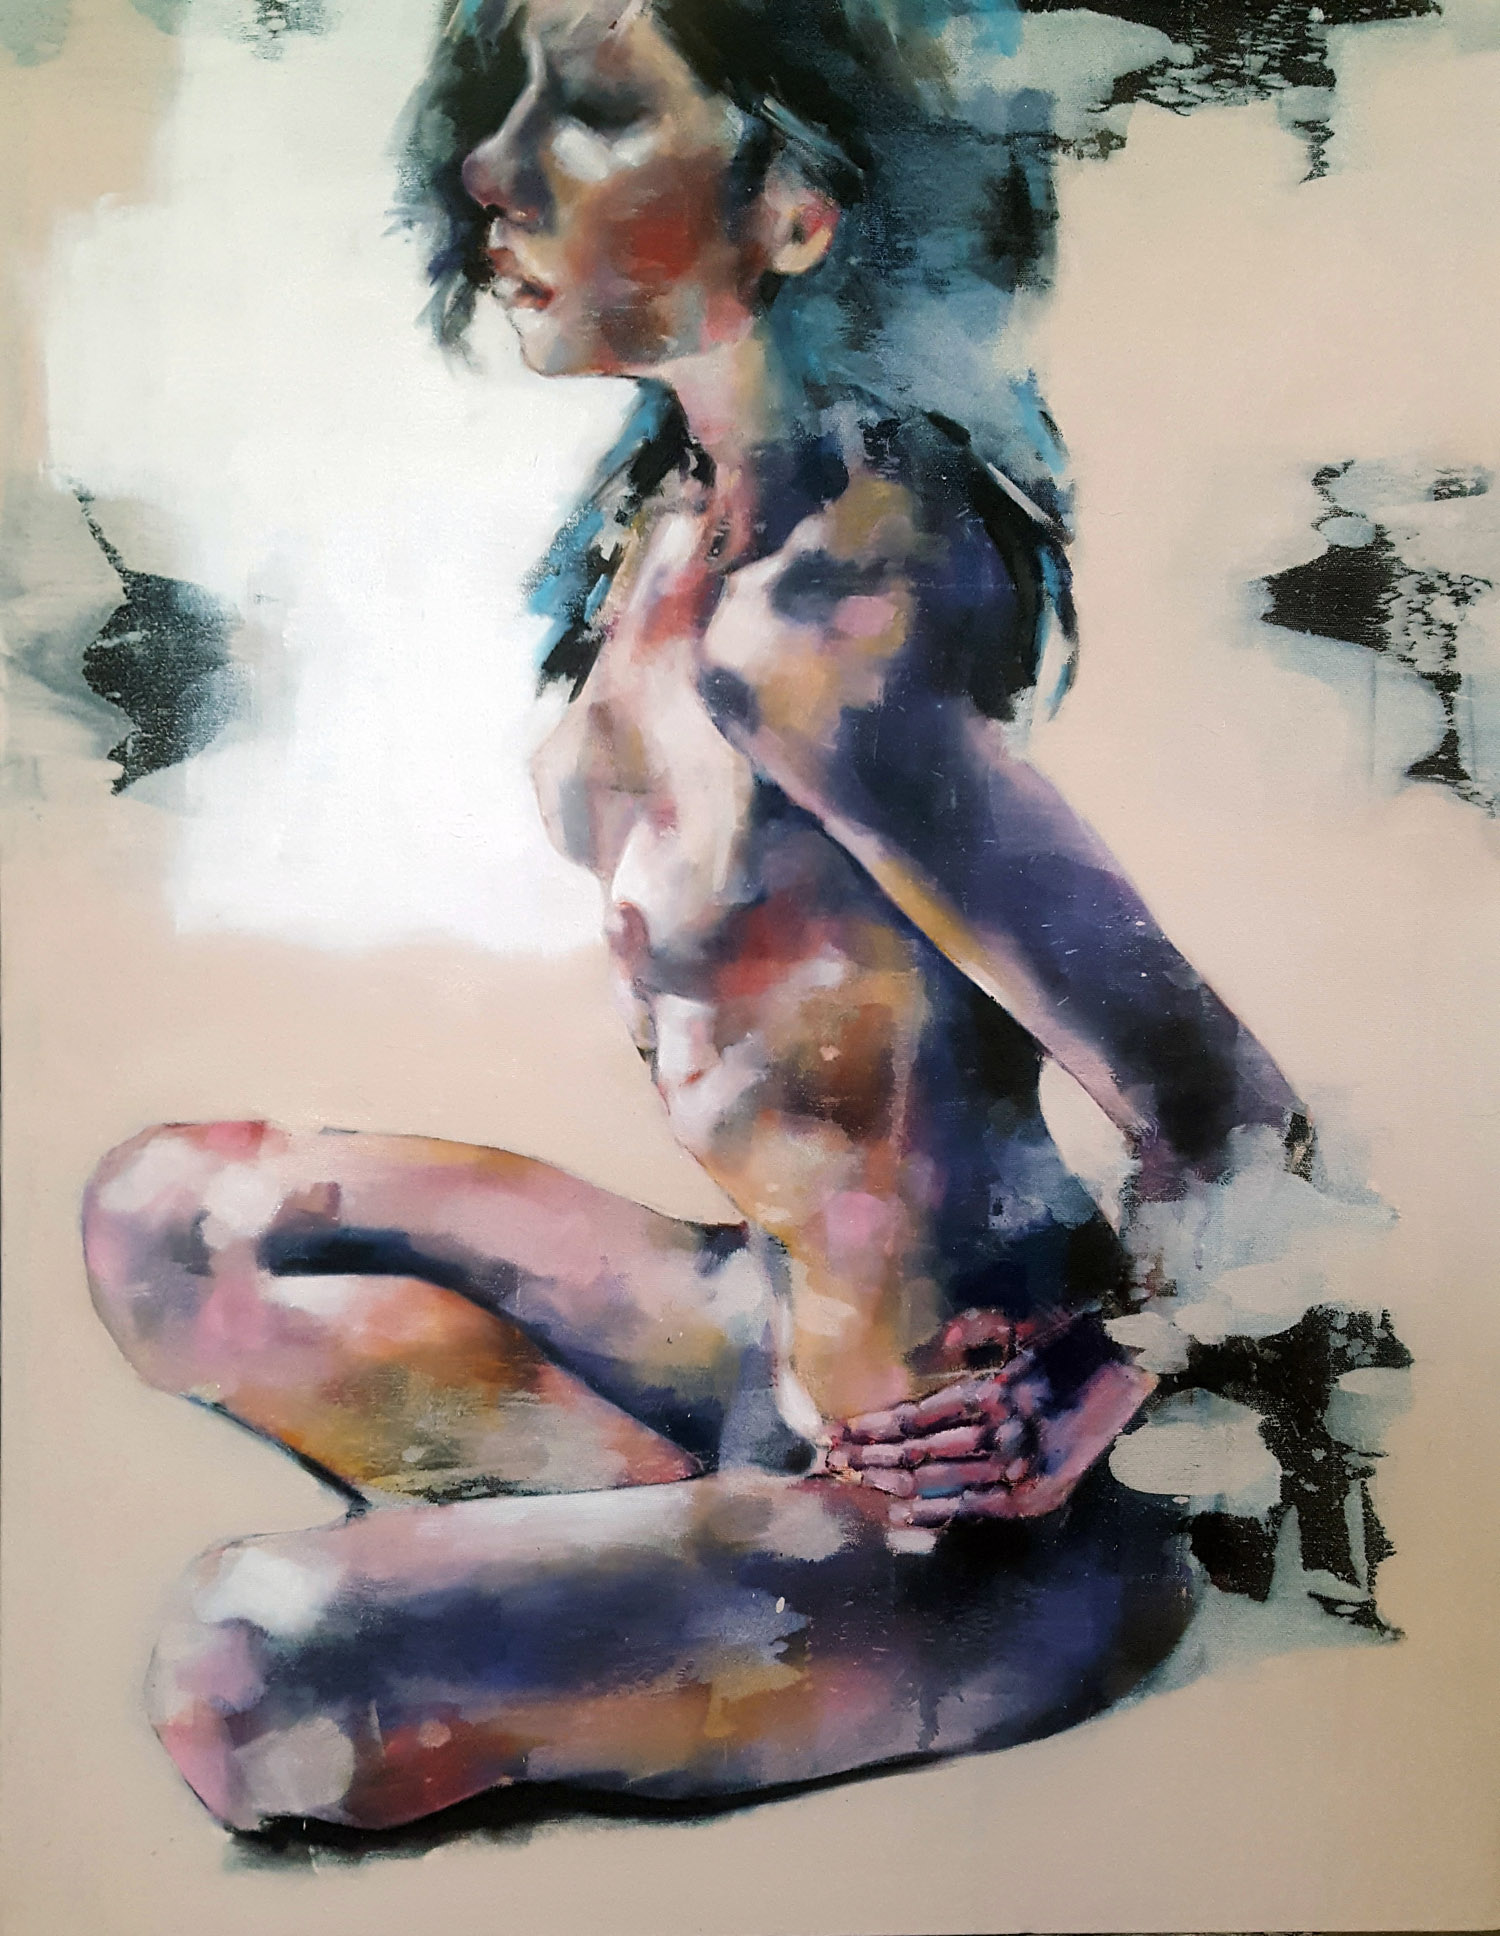 9-6-17 seated figure, oil on canvas, 90x70cm